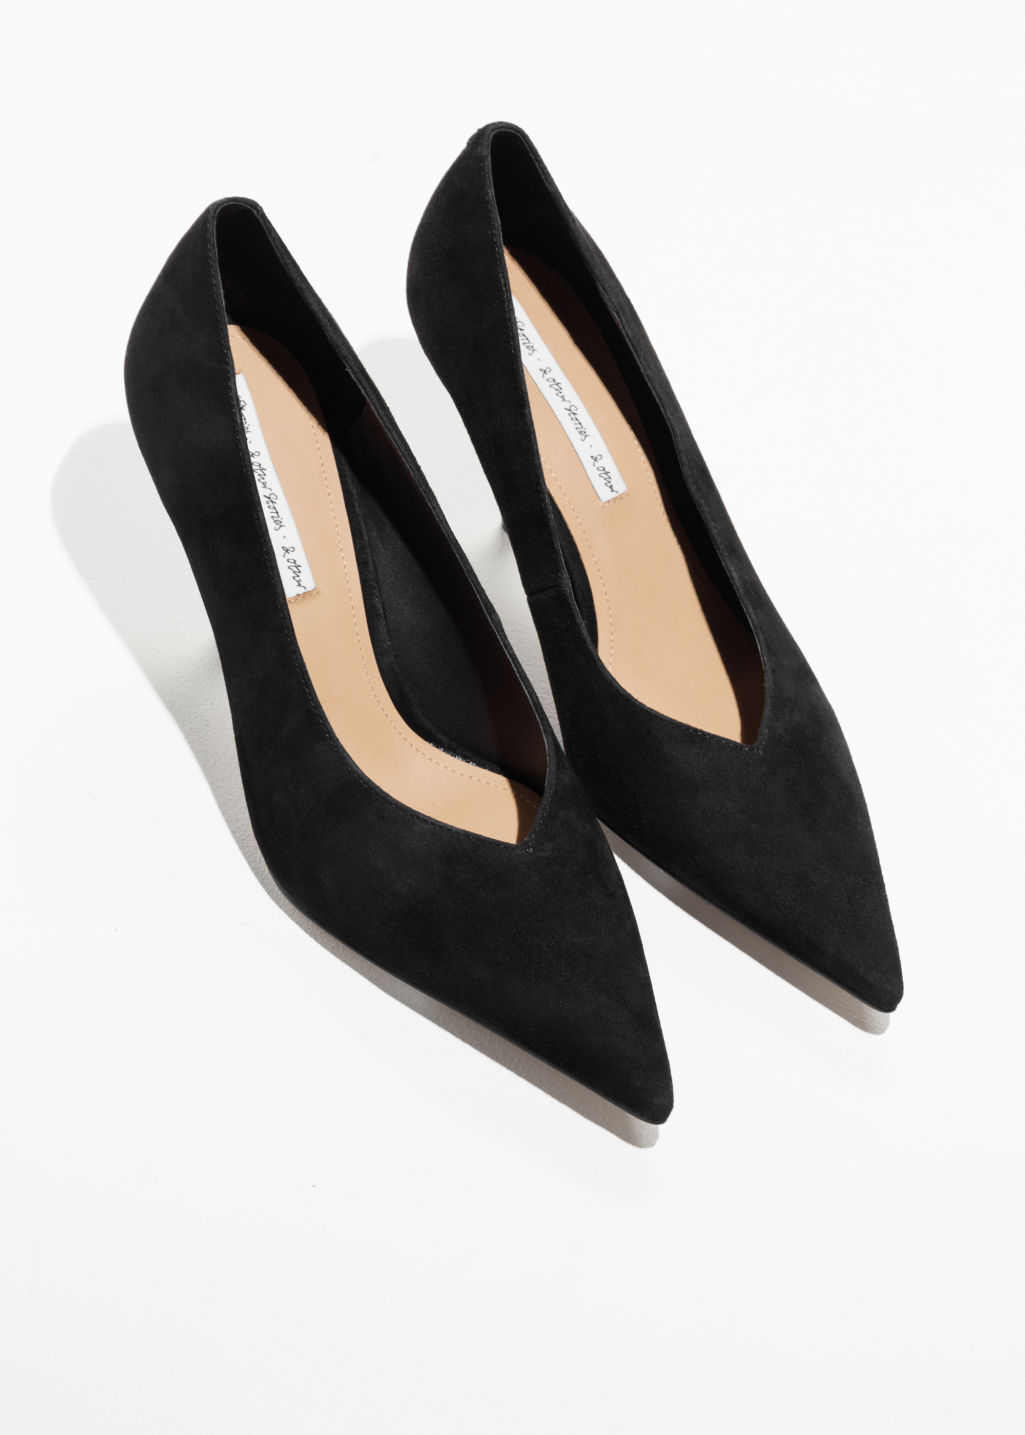 Bajo costo en venta 100% original en venta & OTHER STORIES Pointed Suede Kitten Heels - Black Venta Explorar HAxWid6